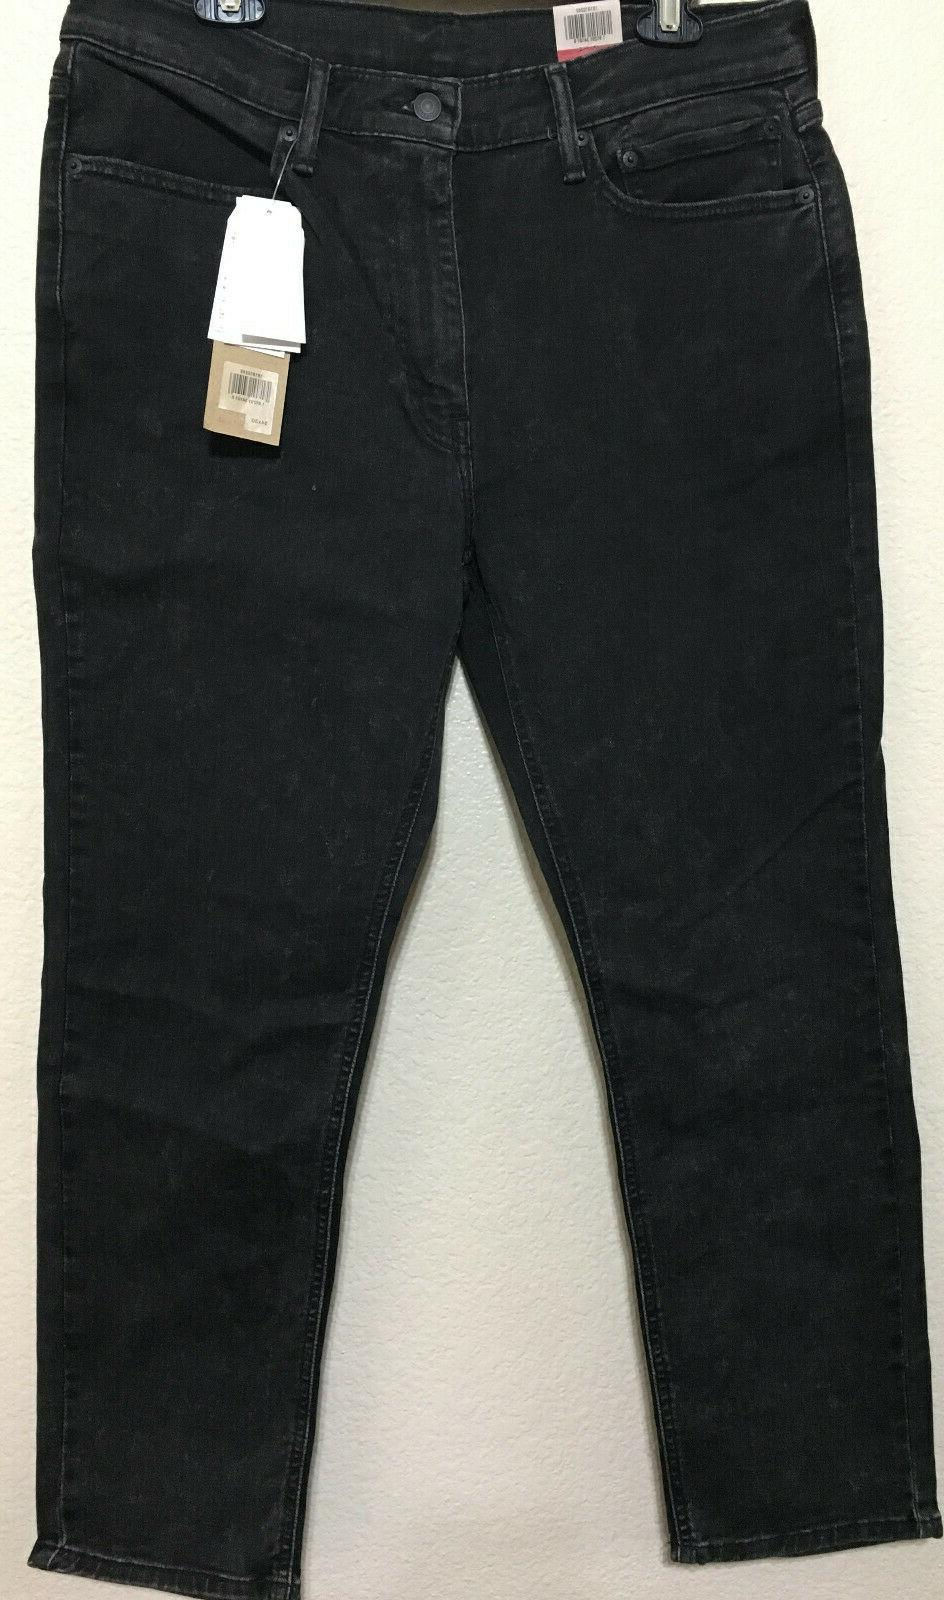 NWT MEN'S - ATHLETIC FIT STRETCH PANT DENIM